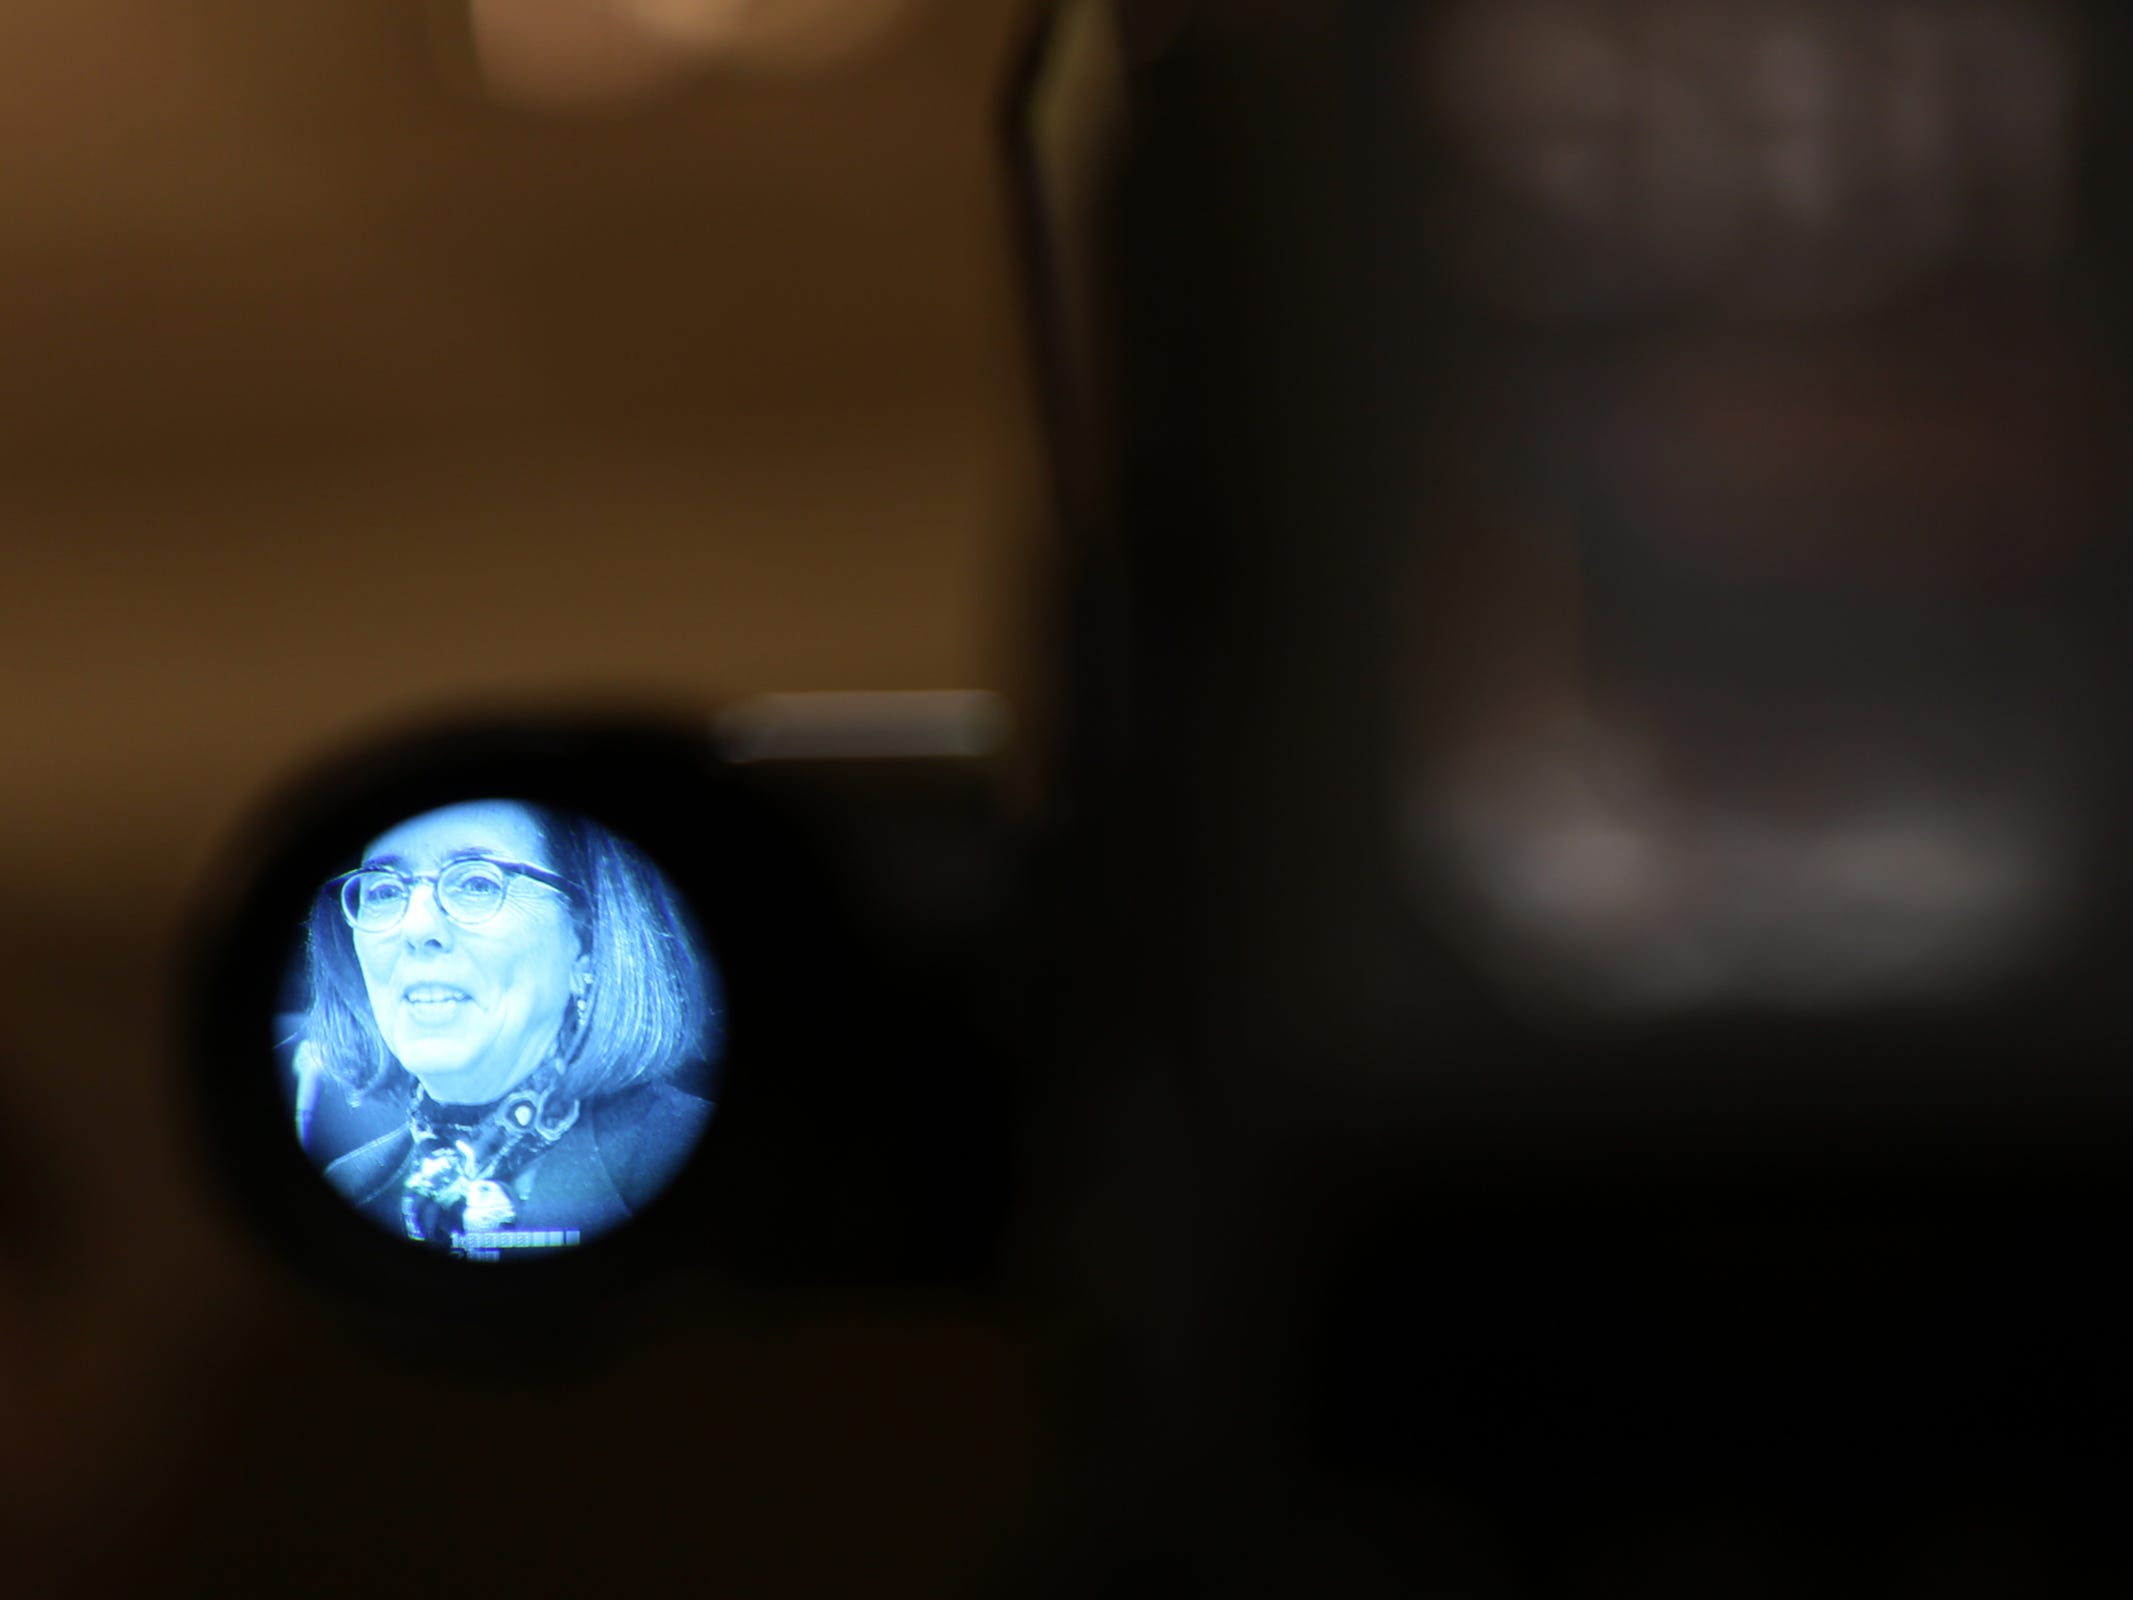 Gov. Kate Brown speaks, as seen through a video camera viewfinder,  during the AP Legislative Preview Day at the Oregon State Capitol in Salem on Friday, Jan. 18, 2019. The 2019 Oregon legislative session begins January 22.